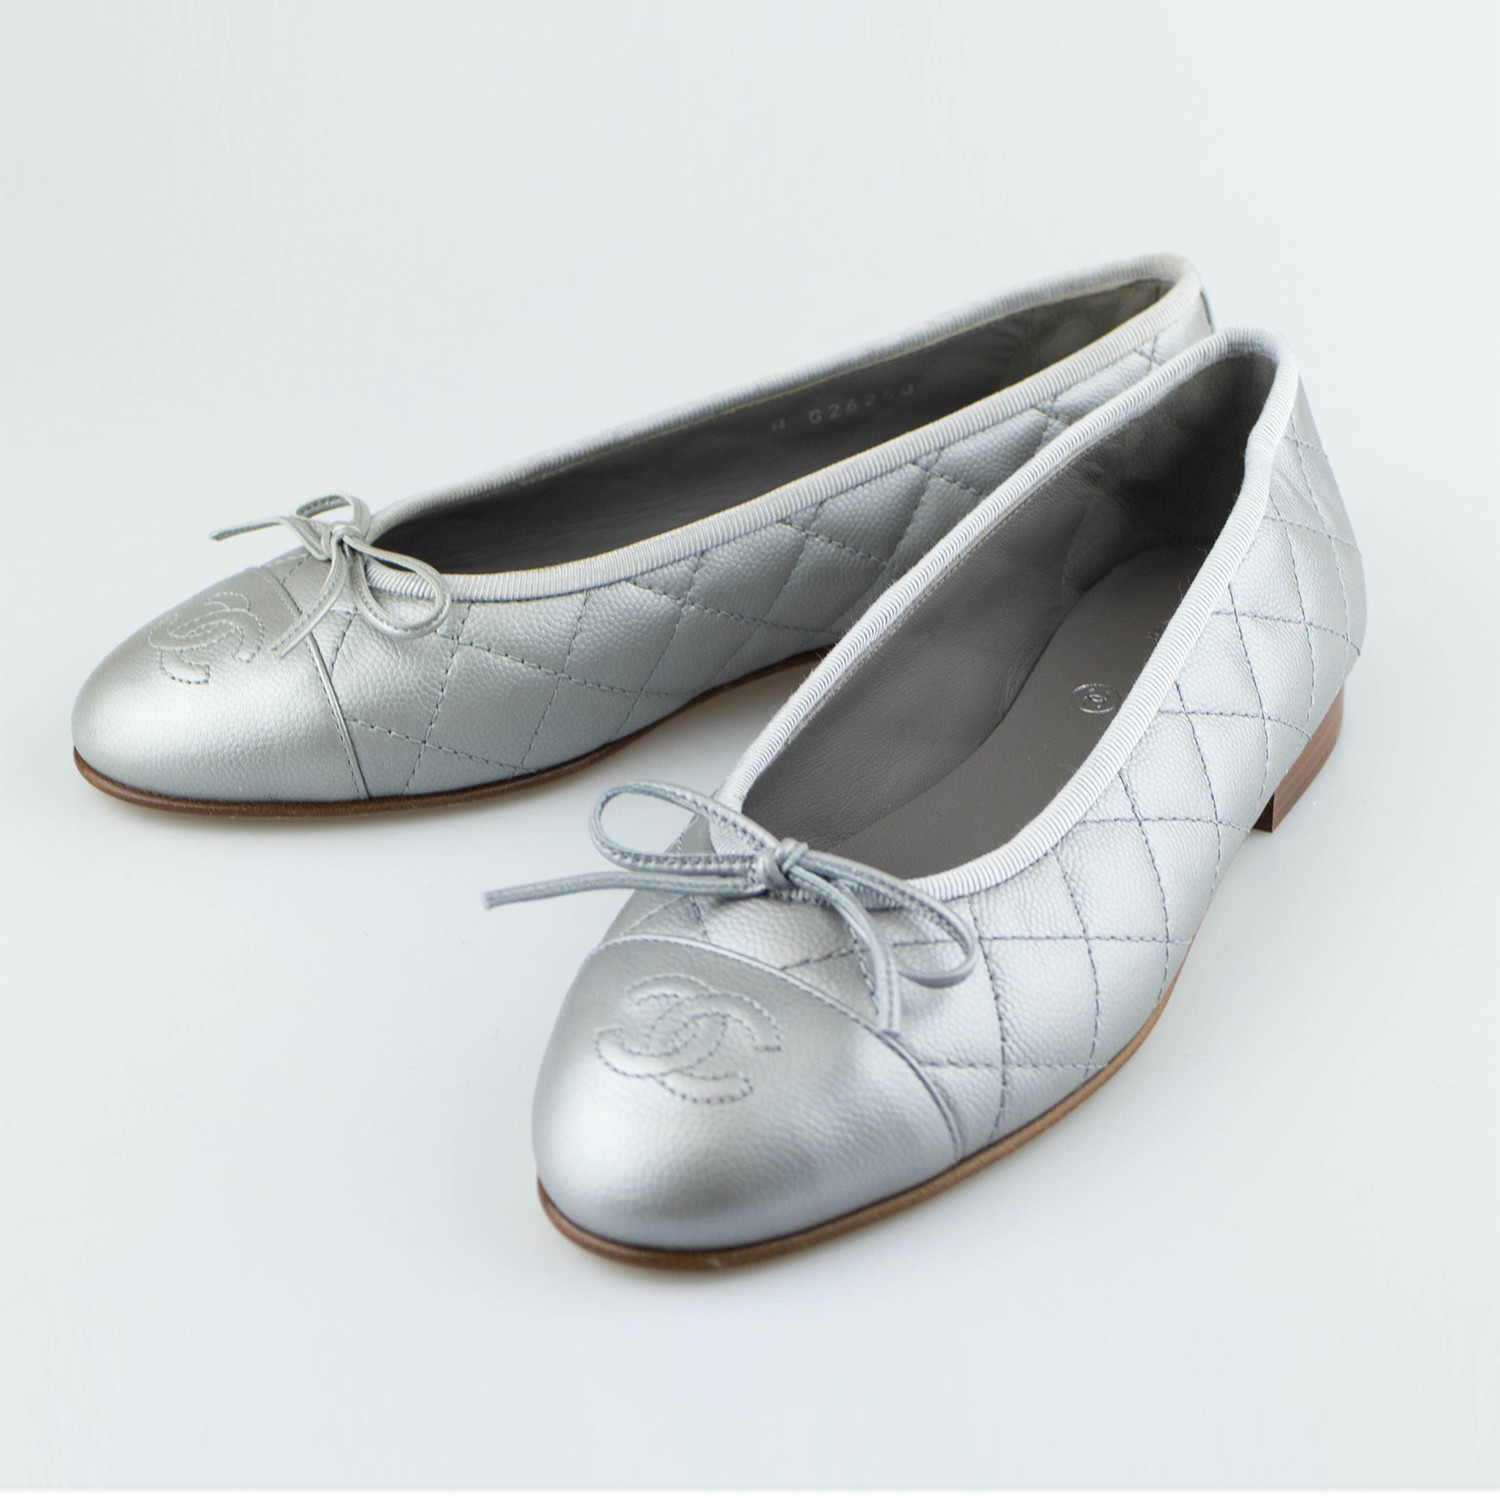 85f98a015e6 Chanel Quilted Leather Cap Toe Ballerina Flats Silver Euro 36